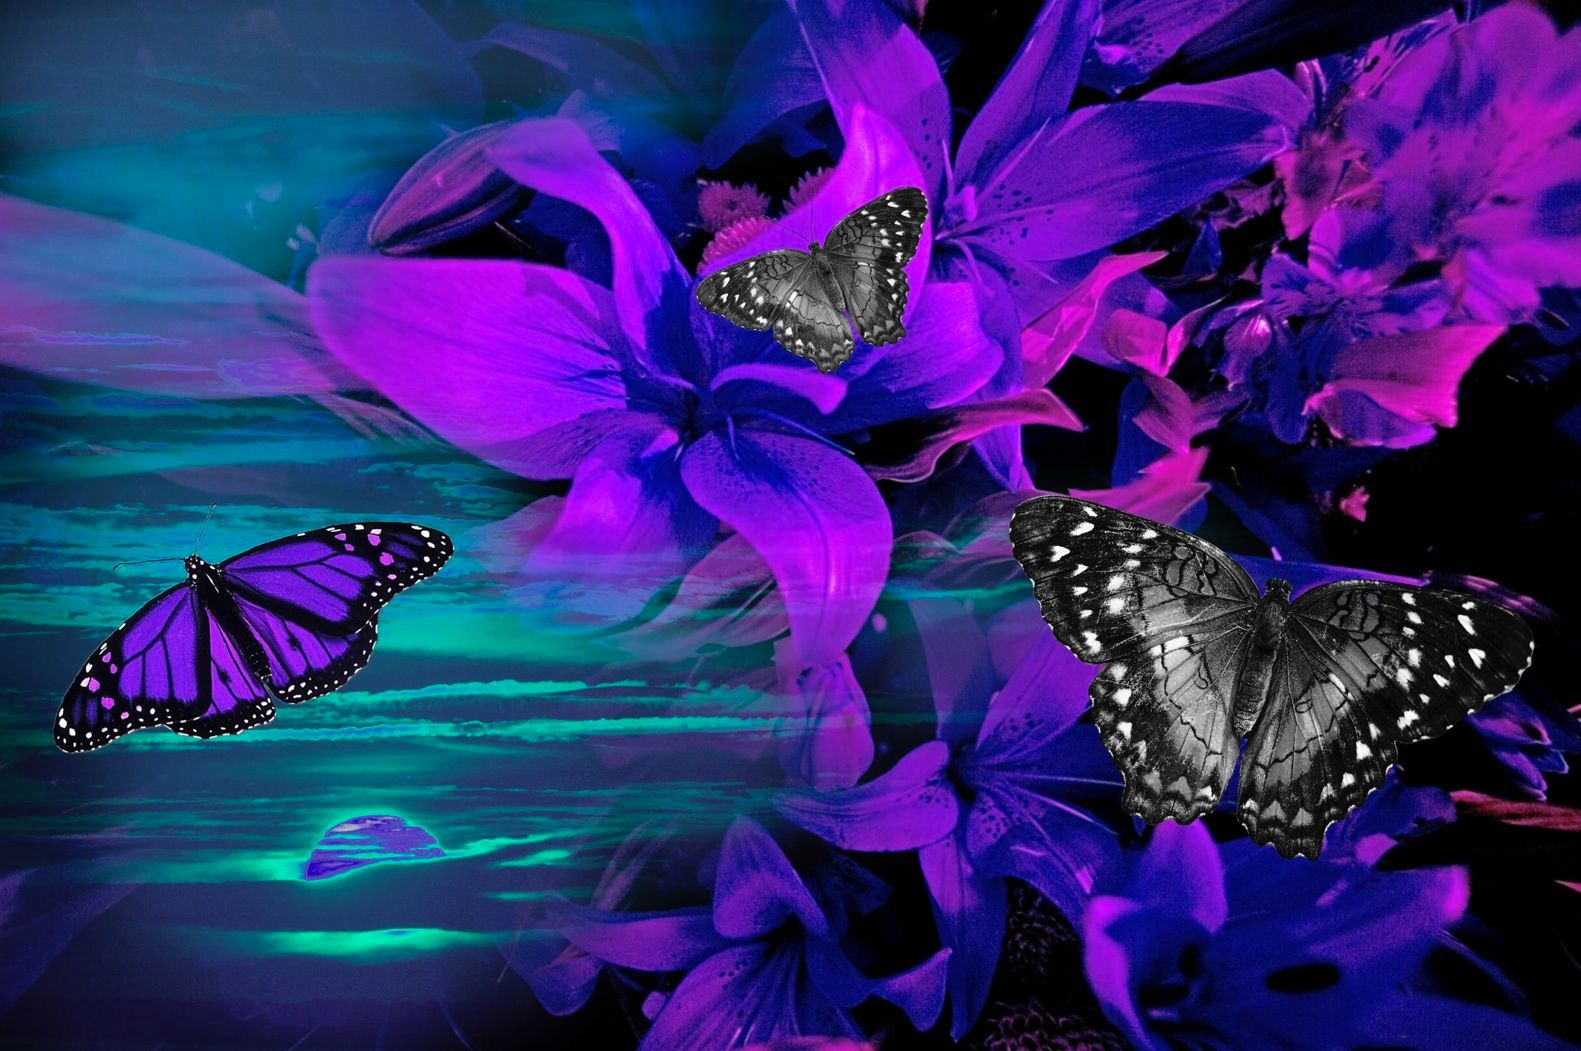 Purple Tropical Flower Sunset with Butterflies